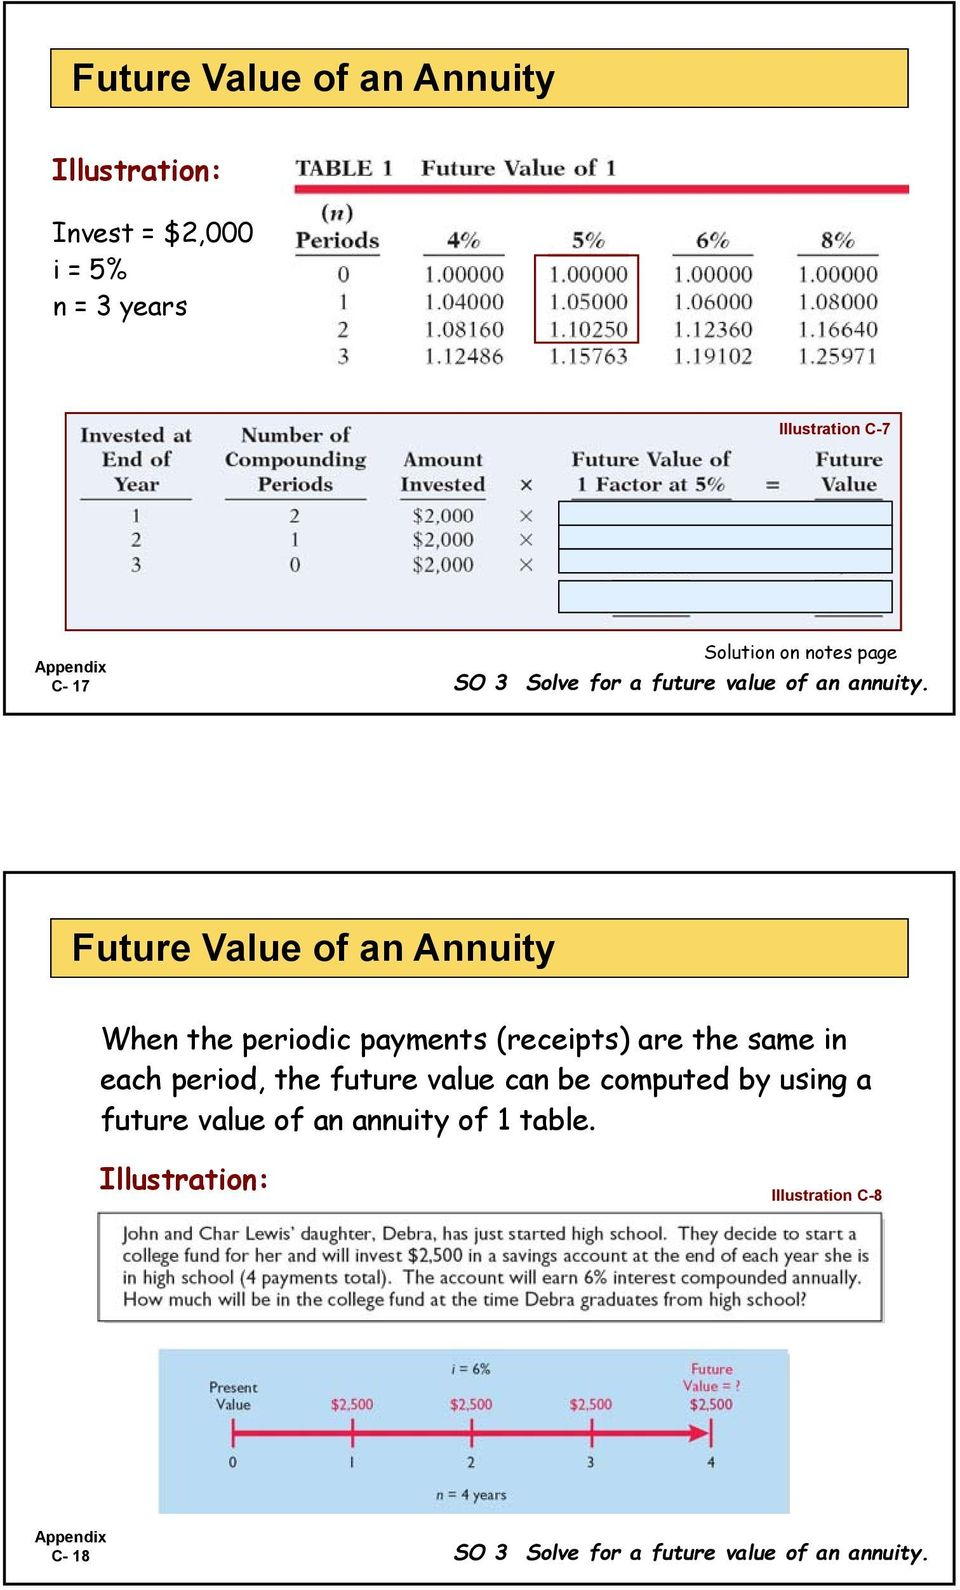 Future Value of an Annuity When the periodic payments (receipts) are the same in each period, the future